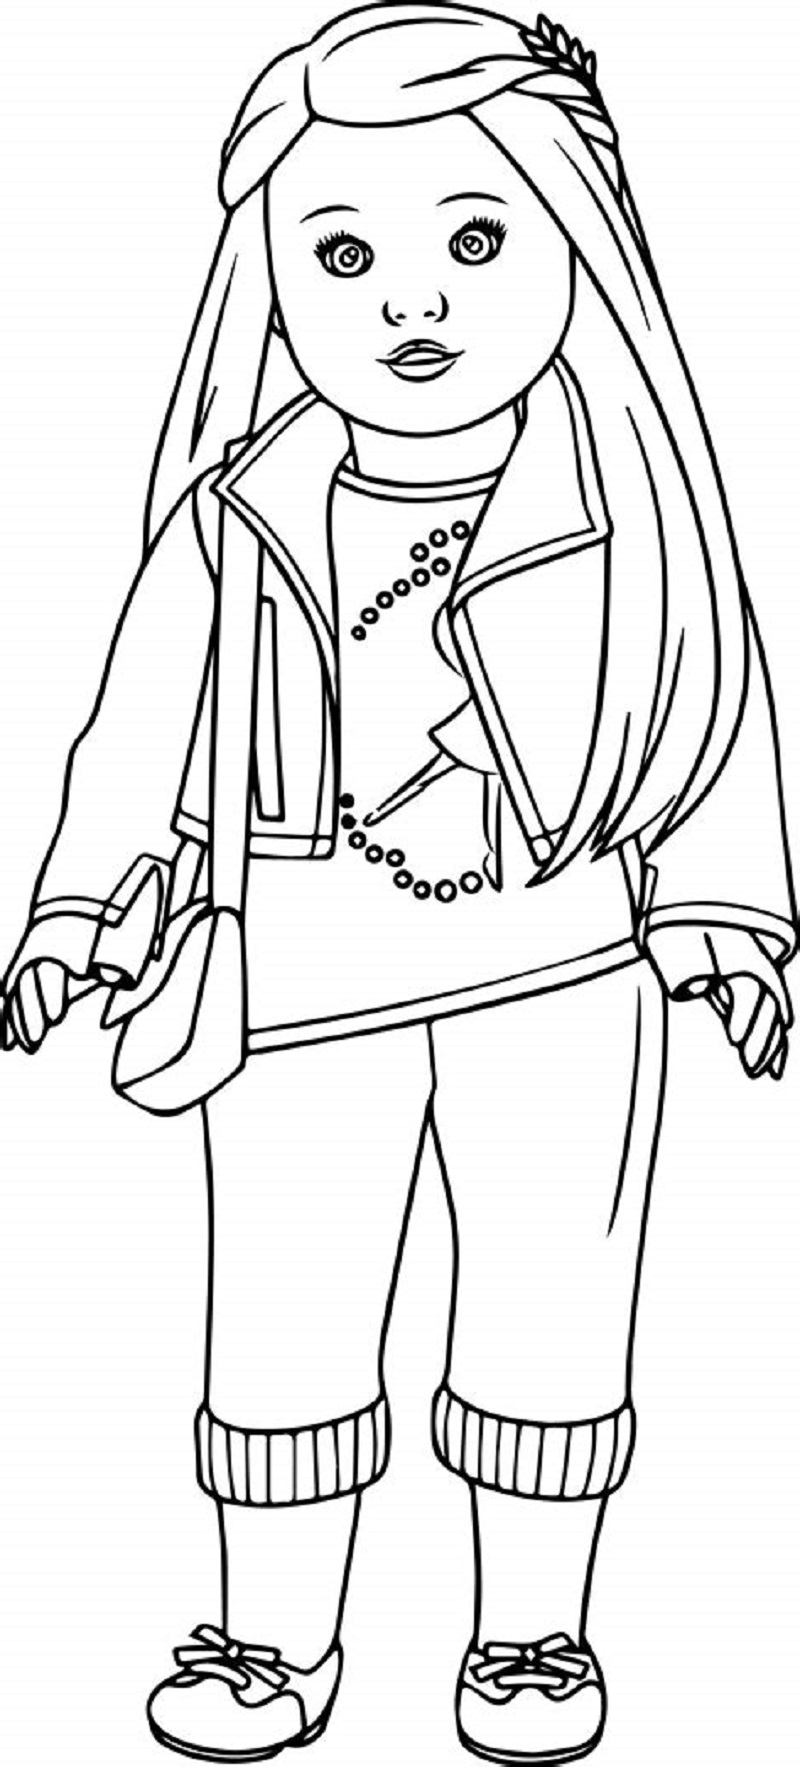 dolls colouring pages 24 creative picture of american girl doll coloring pages dolls pages colouring